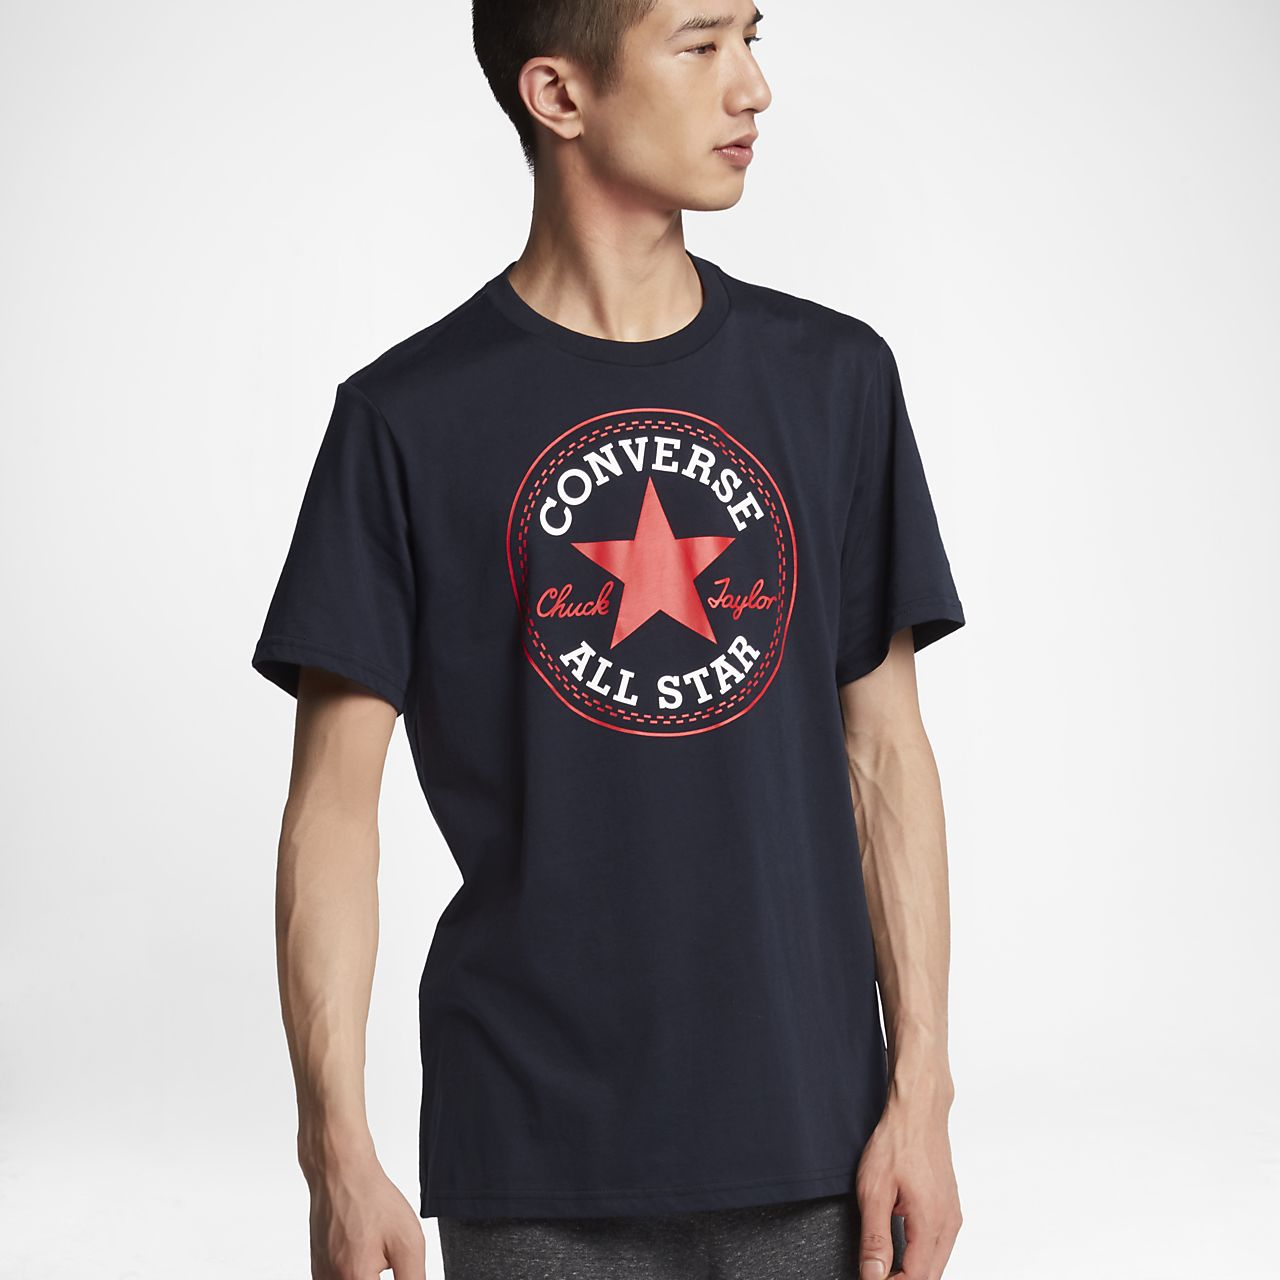 converse clothing mens